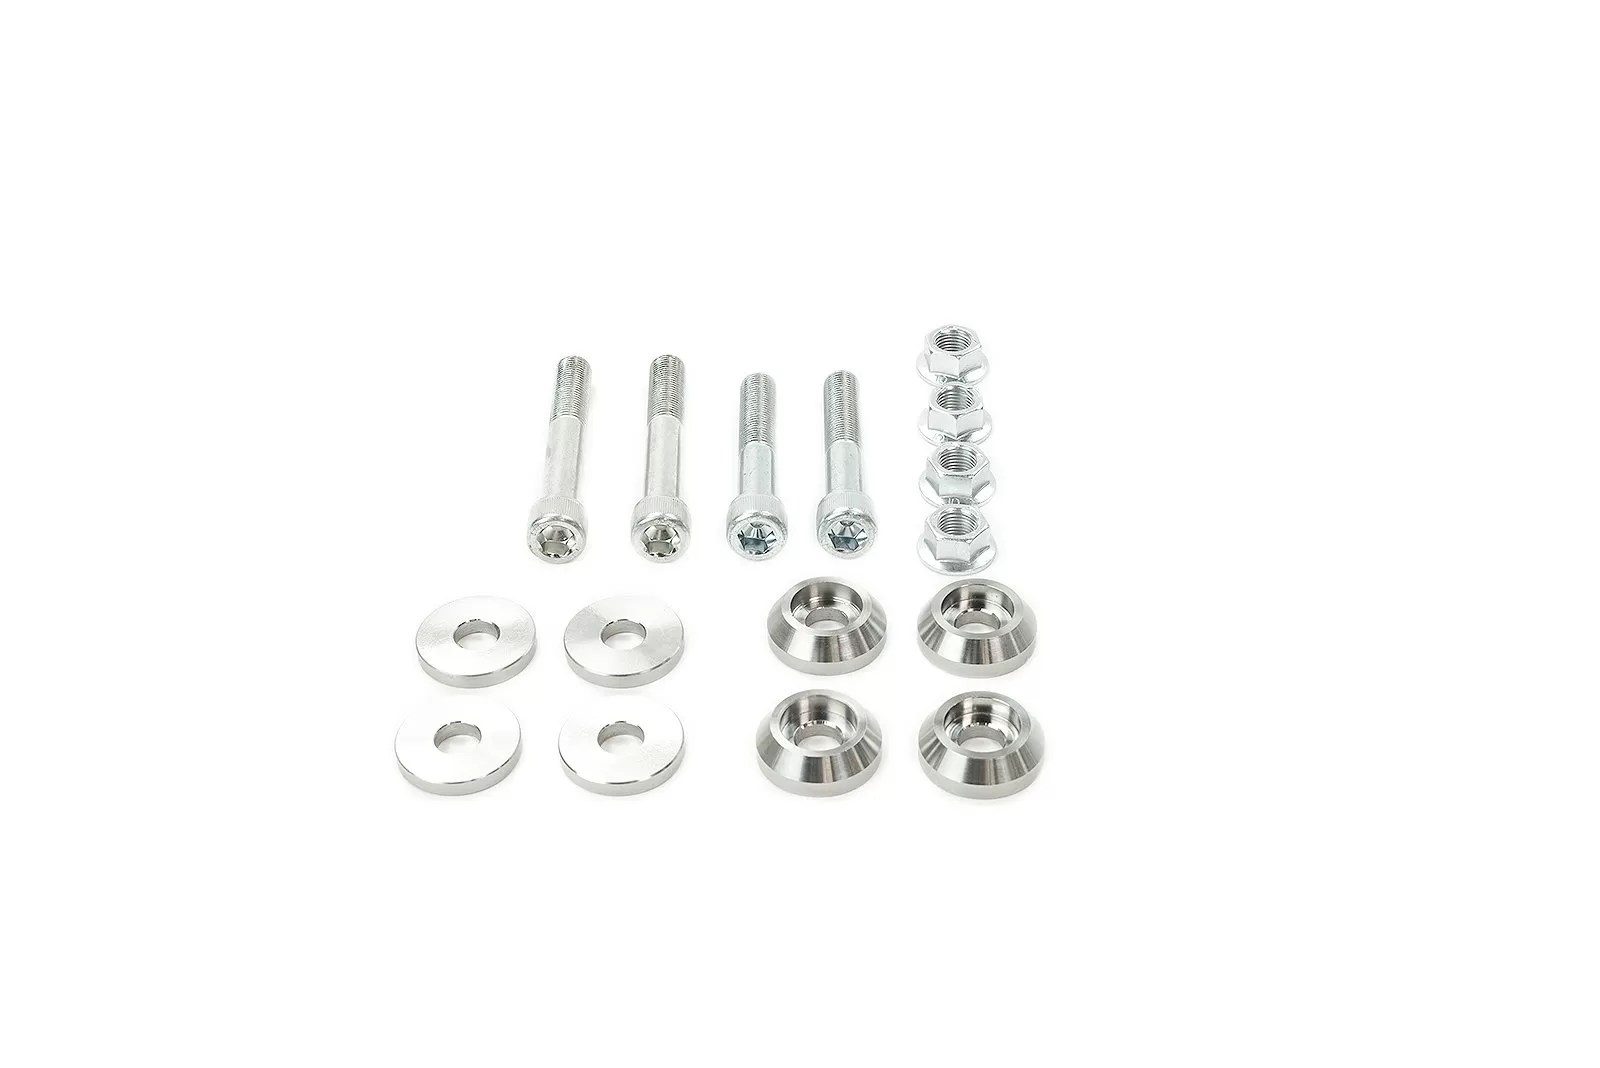 Voodoo13 Eccentric Lockout Kit Non Hicas